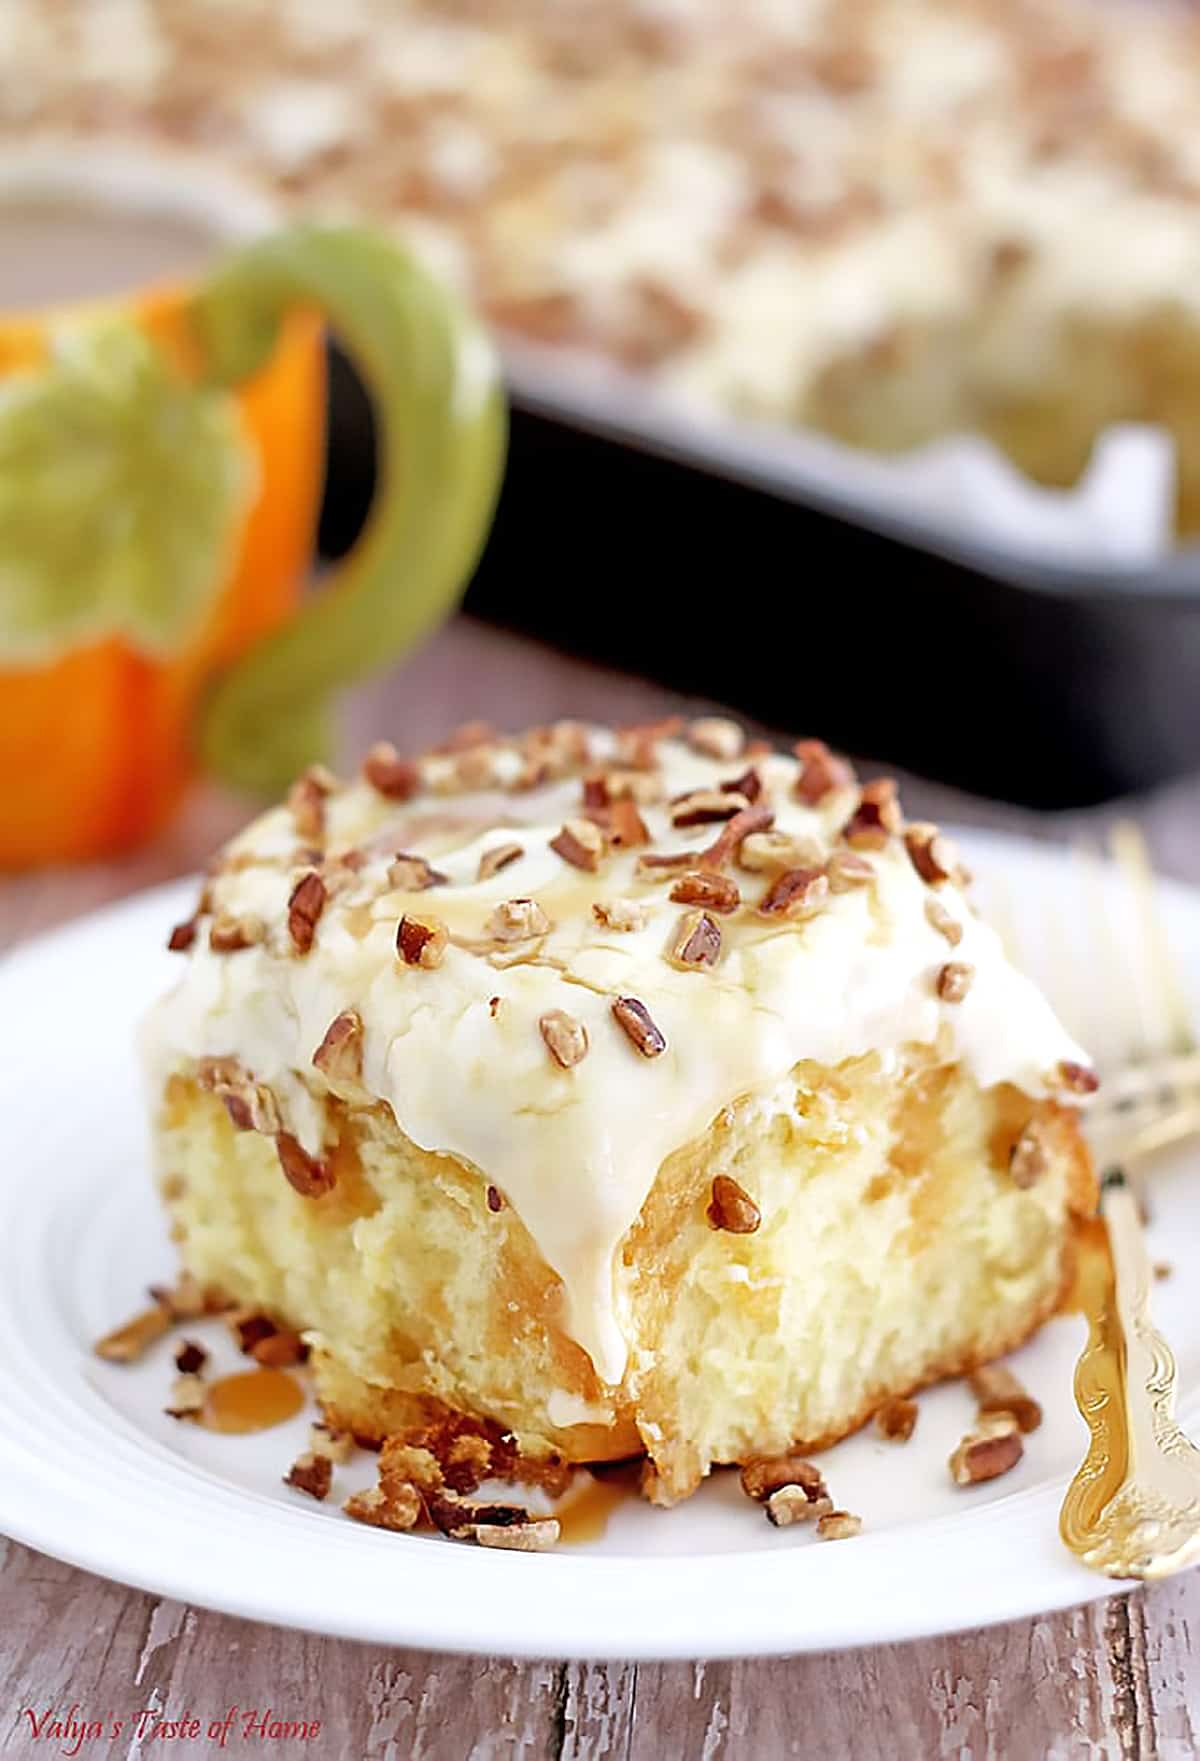 These are my favorite pumping goodies in one Top 10 Pumpkin Fall Recipes post that is perfect for upcoming holidays or any time you want your kitchen to smell like fall aroma of cinnamon, nutmeg, and pumping.